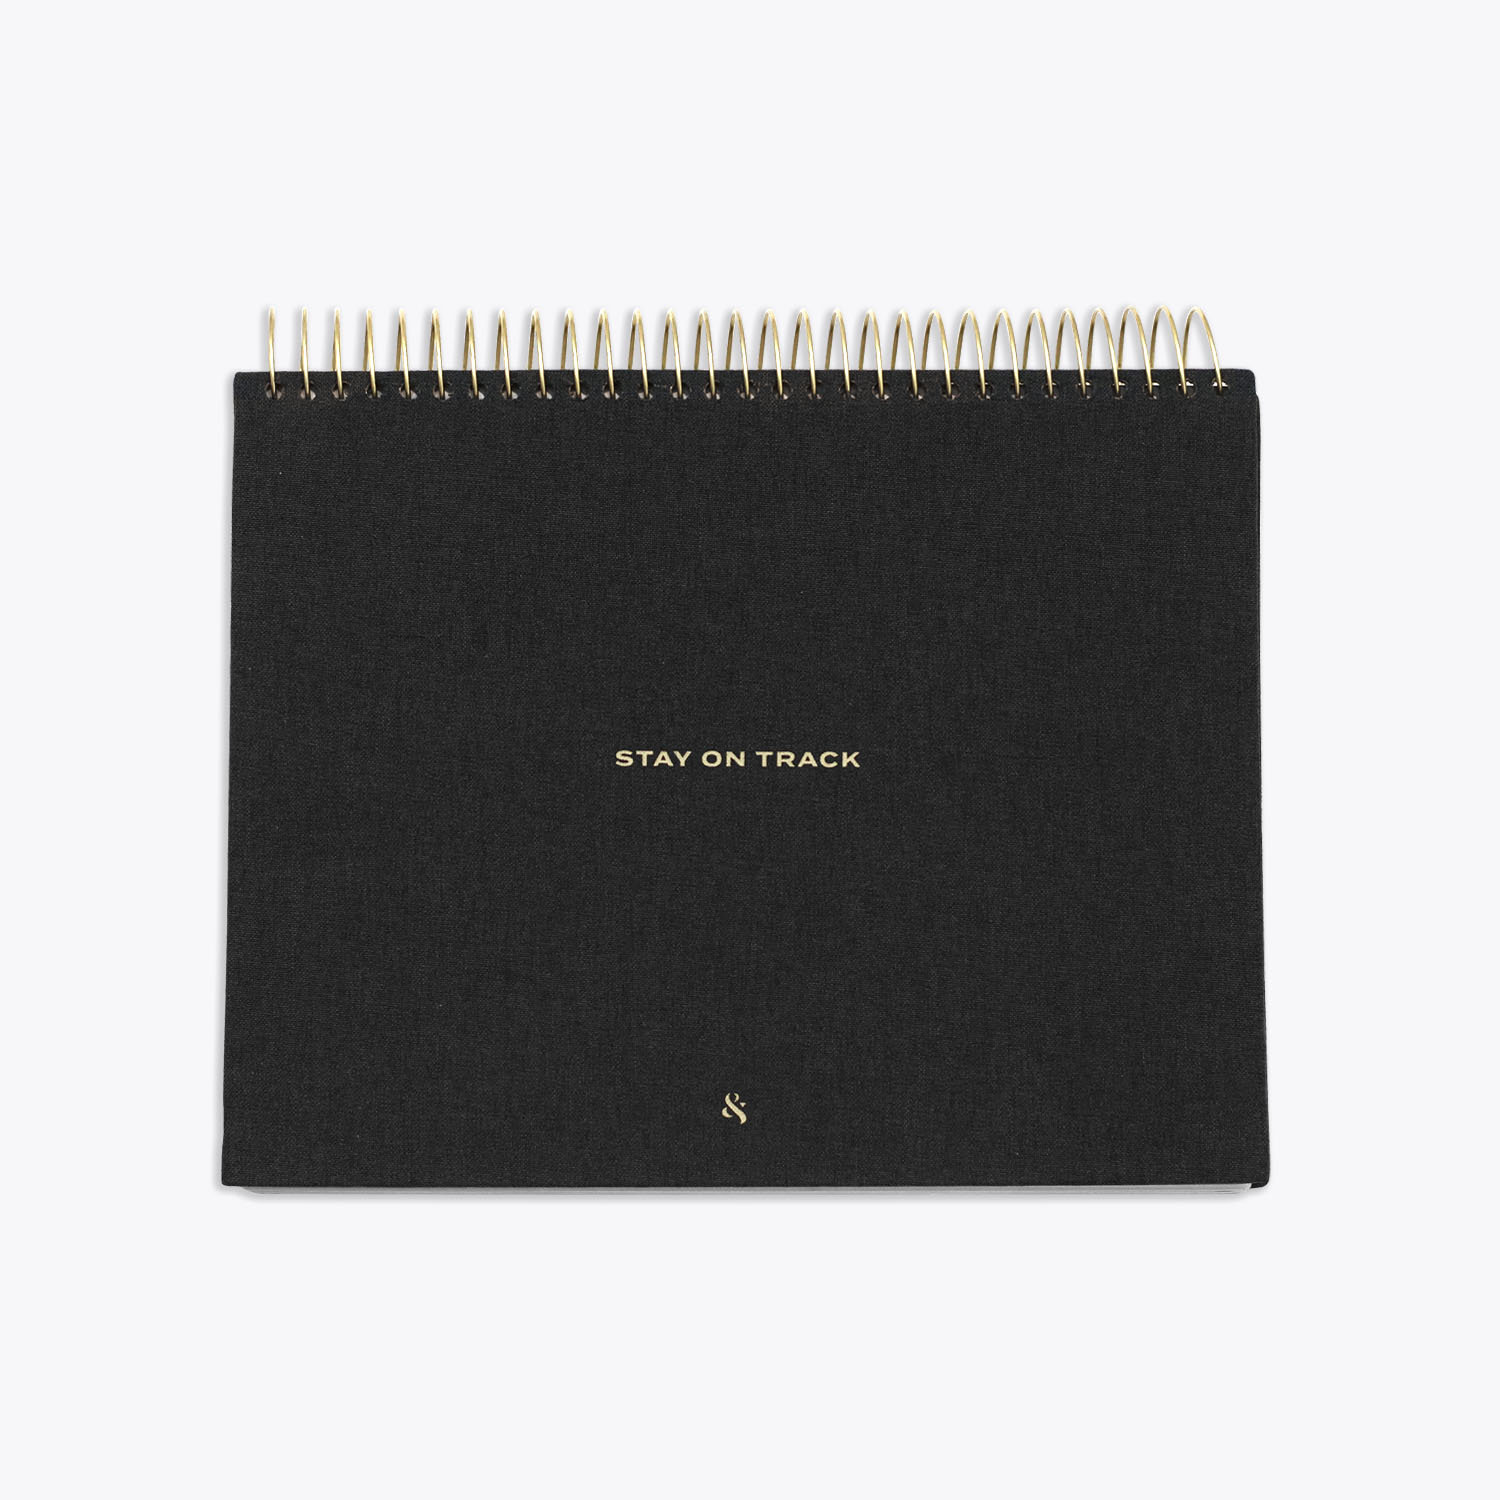 Wit and Delight Stay on Track Desktop Notepad Organizer